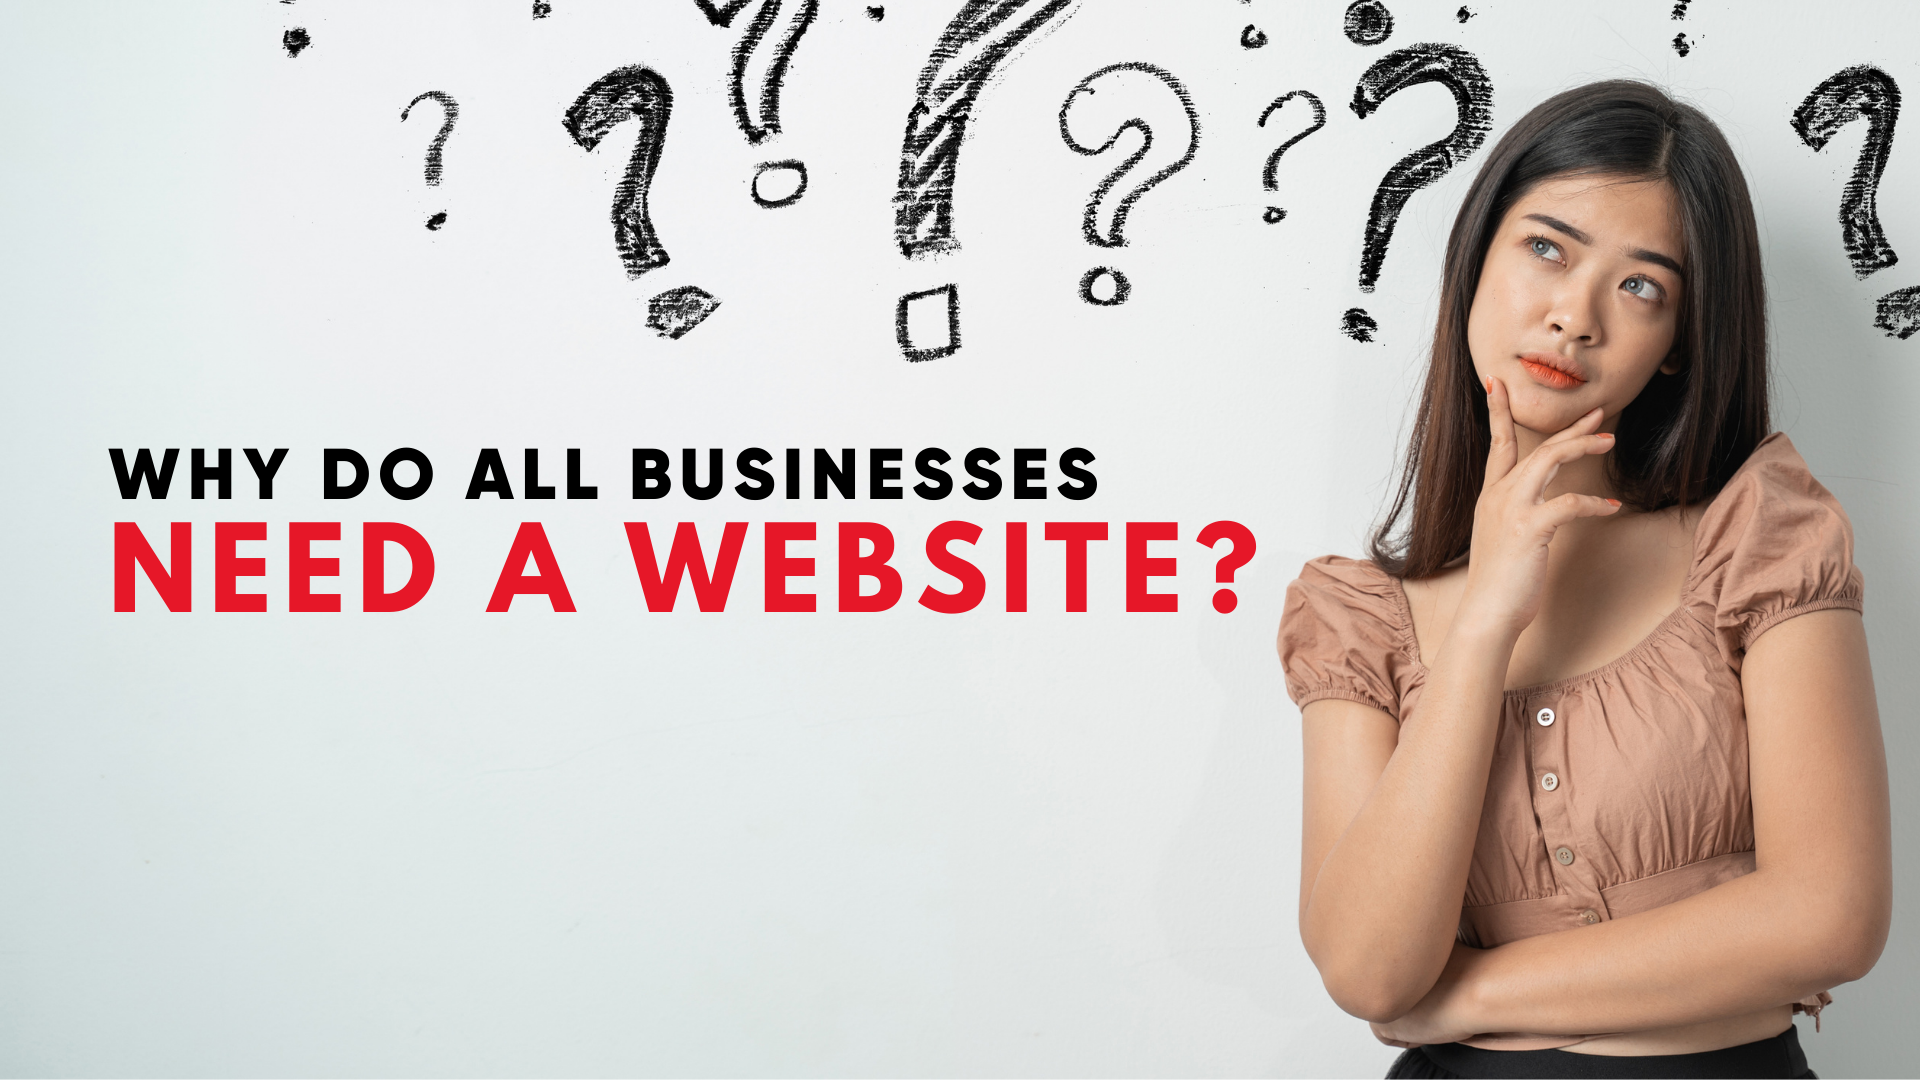 need a website, why do you need a website, small business website, local business website, why business need a website, online presence, small business tips, business tips, website tips, why own a website, websites 2021, small business websites 2021